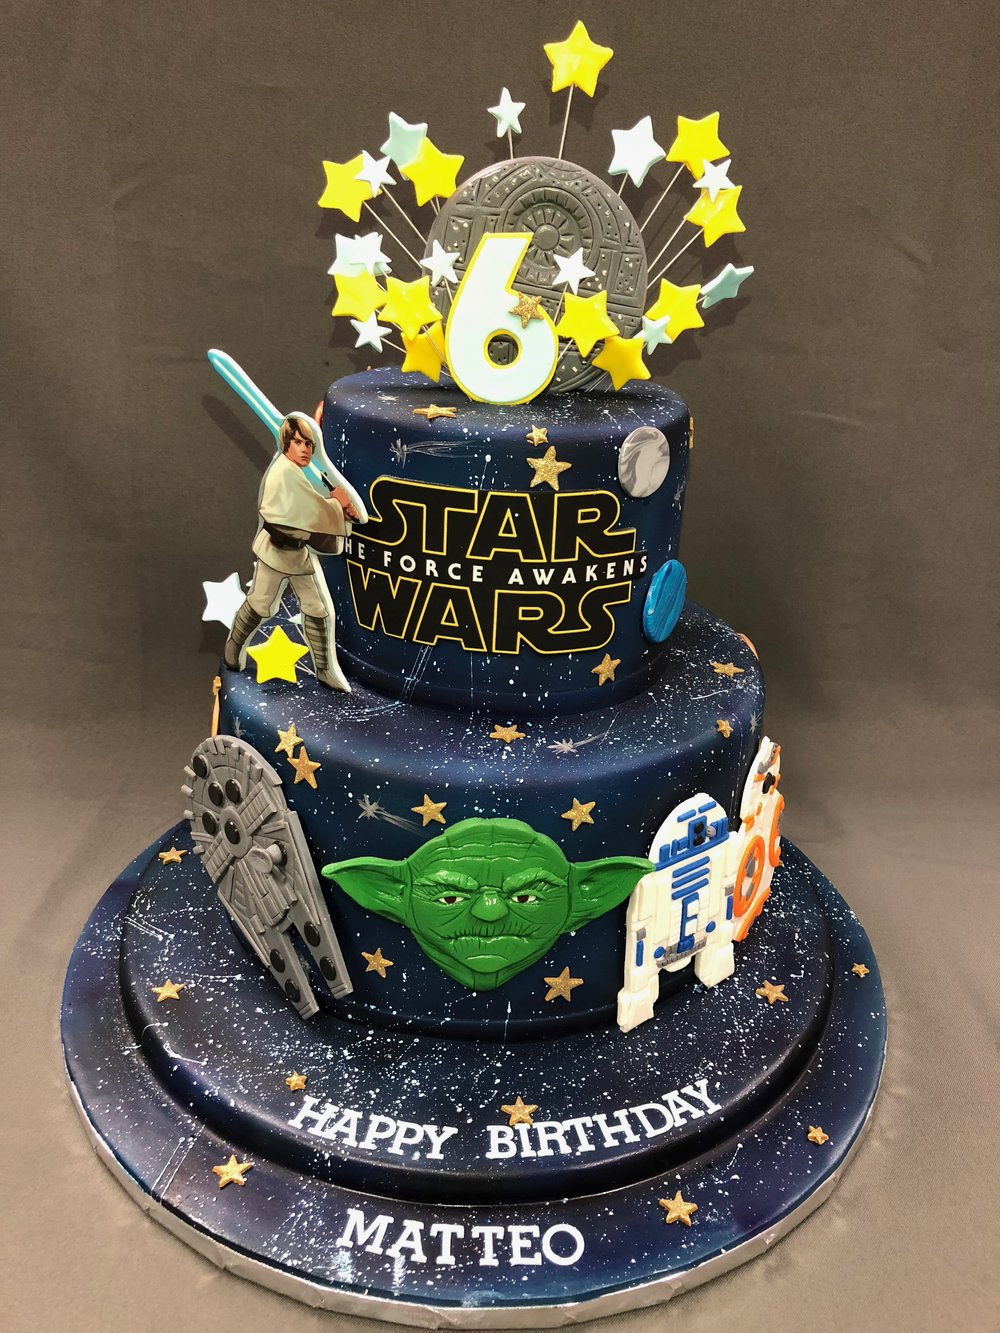 Star Wars Theme Birthday Cake New Jersey